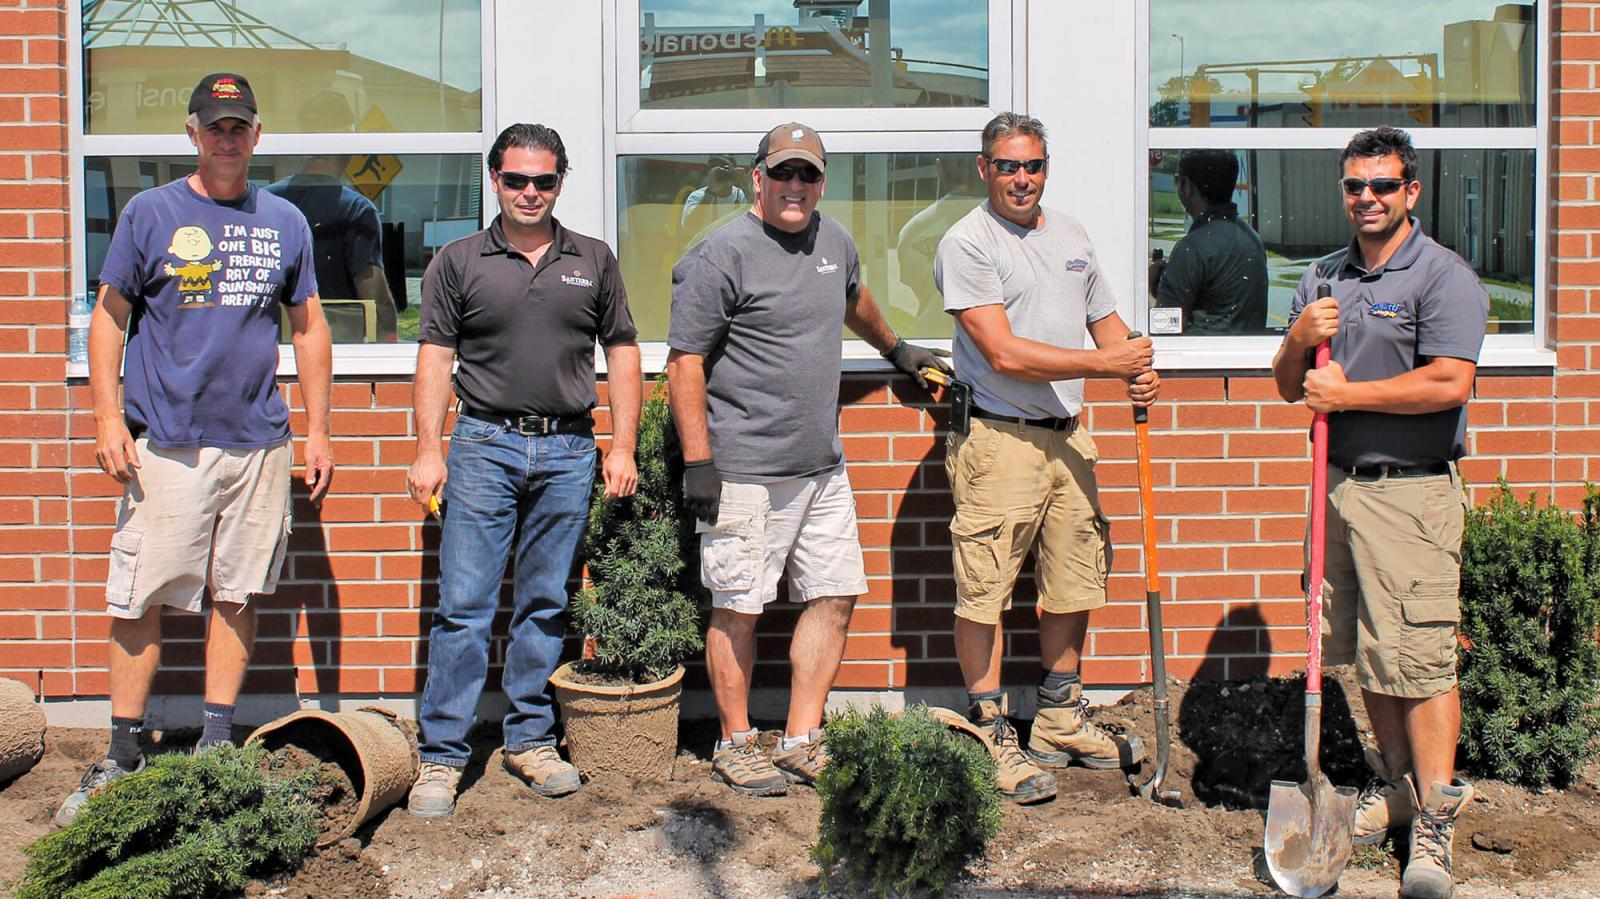 Members of Windsor Chapter lent their creative talents to improve the Safety Village of Windsor. In photo, from left, are some of those members, Dan Garlatti, Joe Santarossa Jr., Chris Power, Darren O'Grady and Sal Costante.